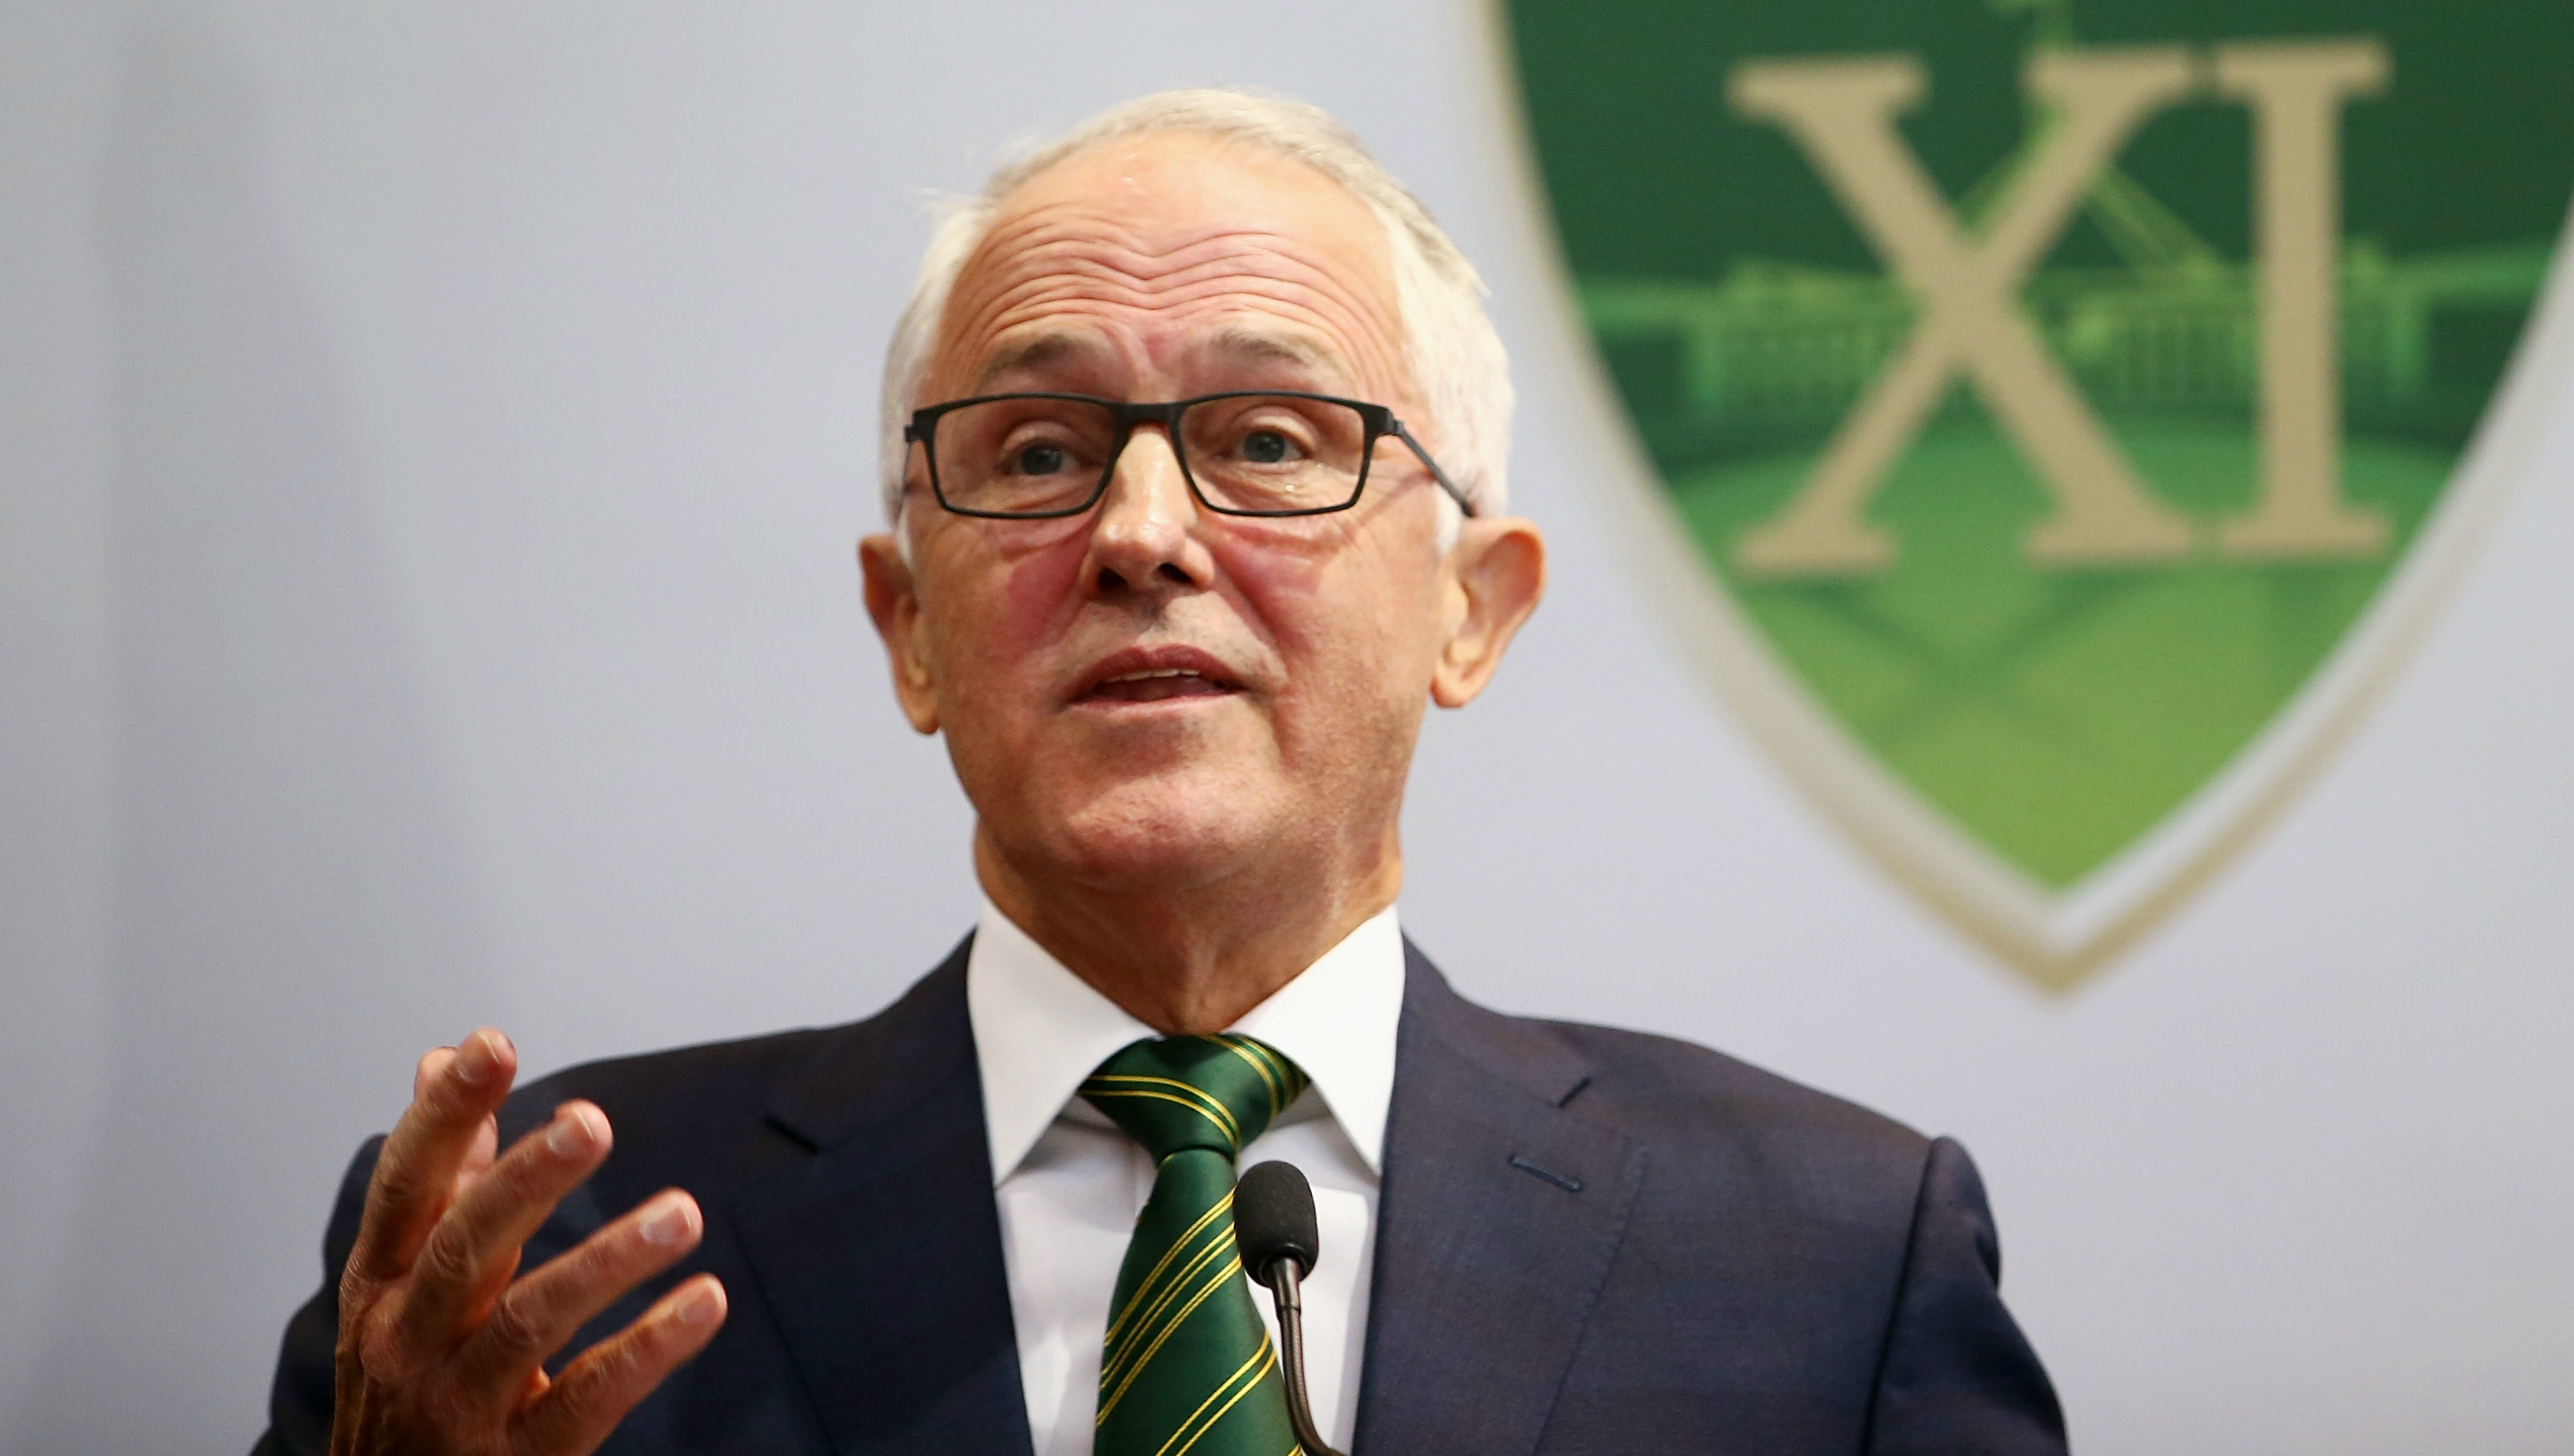 'It beggars belief': Malcolm Turnbull slams Aussie cricket cheats